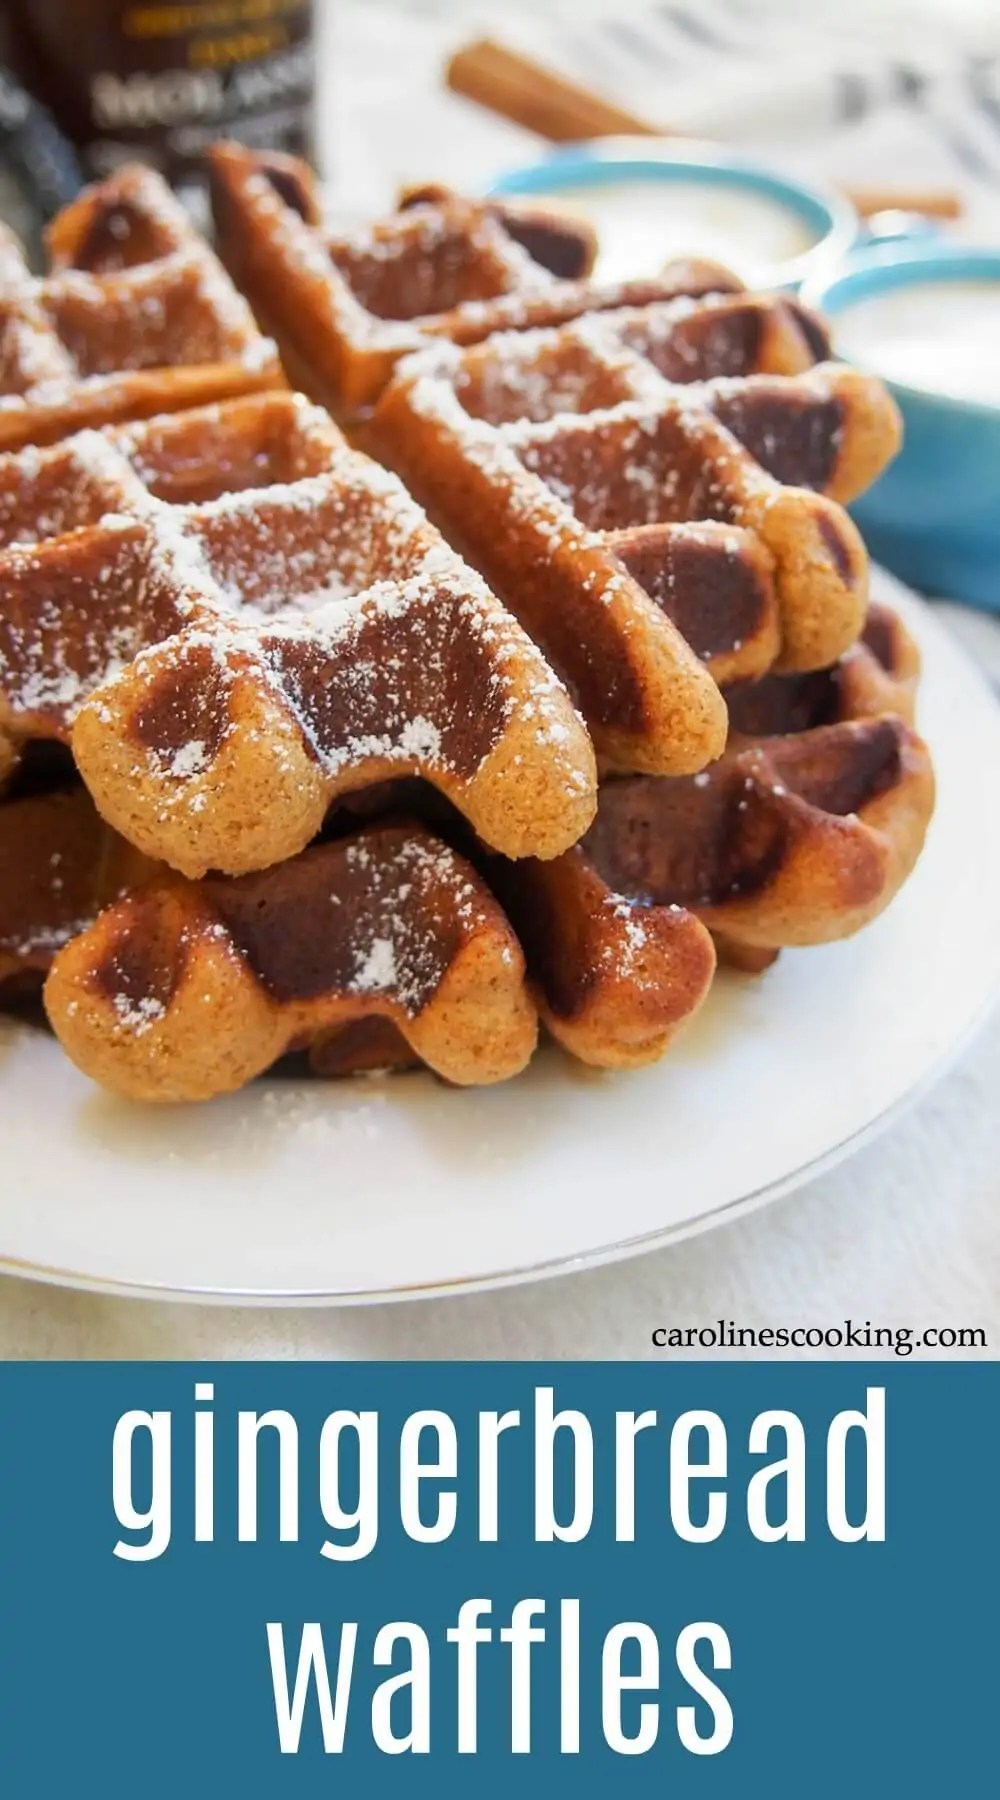 These gingerbread waffles tease you with they wonderfully warm spice smell as they cook and are just as tasty when you, thankfully, get to eat them soon after. An easy and delicious breakfast! These waffles are also great for entertaining and busy mornings as you can make them ahead of time and then store or freeze before re-heating. #gingerbread #waffle #breakfast